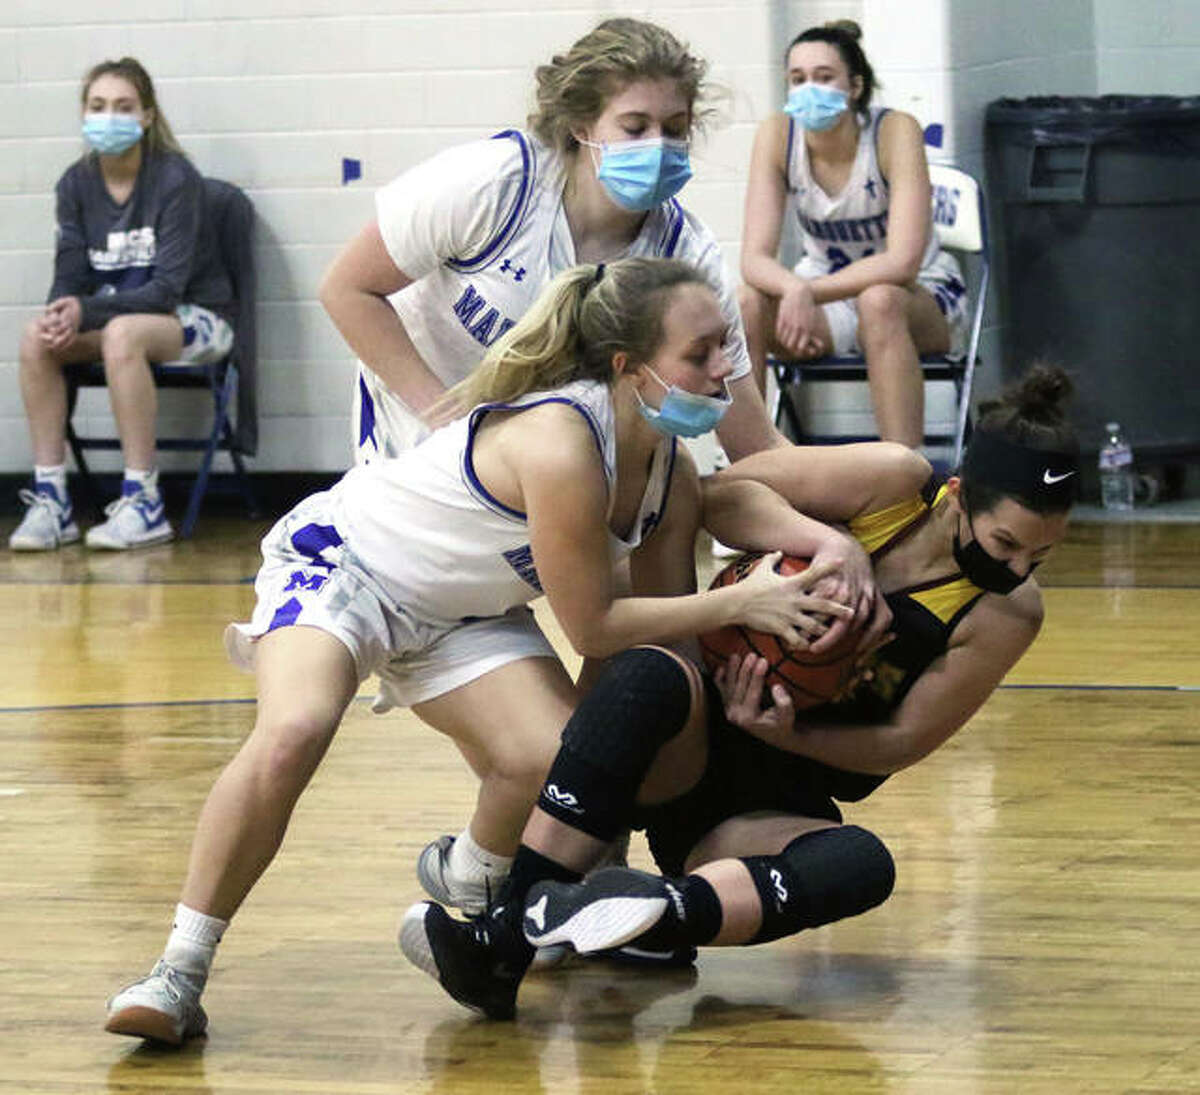 Marquette Catholic's Hayley Porter ties up EA-WR's Mallory Martin (right) for a loose ball in front of the Explorers' Hayley Williams in the first half Wednesday night at Marquette Family Arena in Alton.